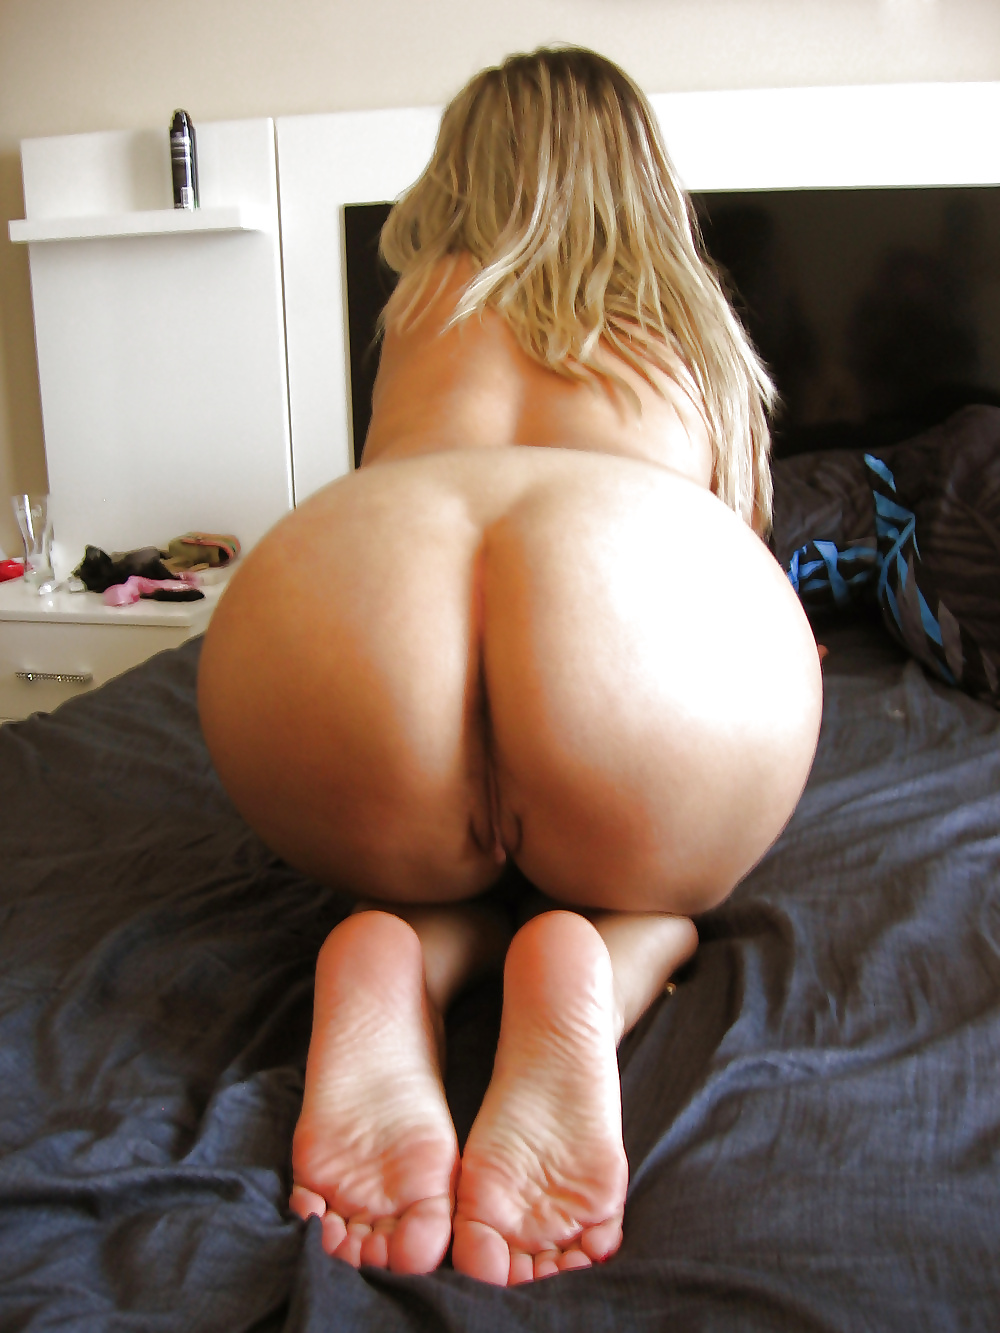 Hot fat girls also extreme flexible 5